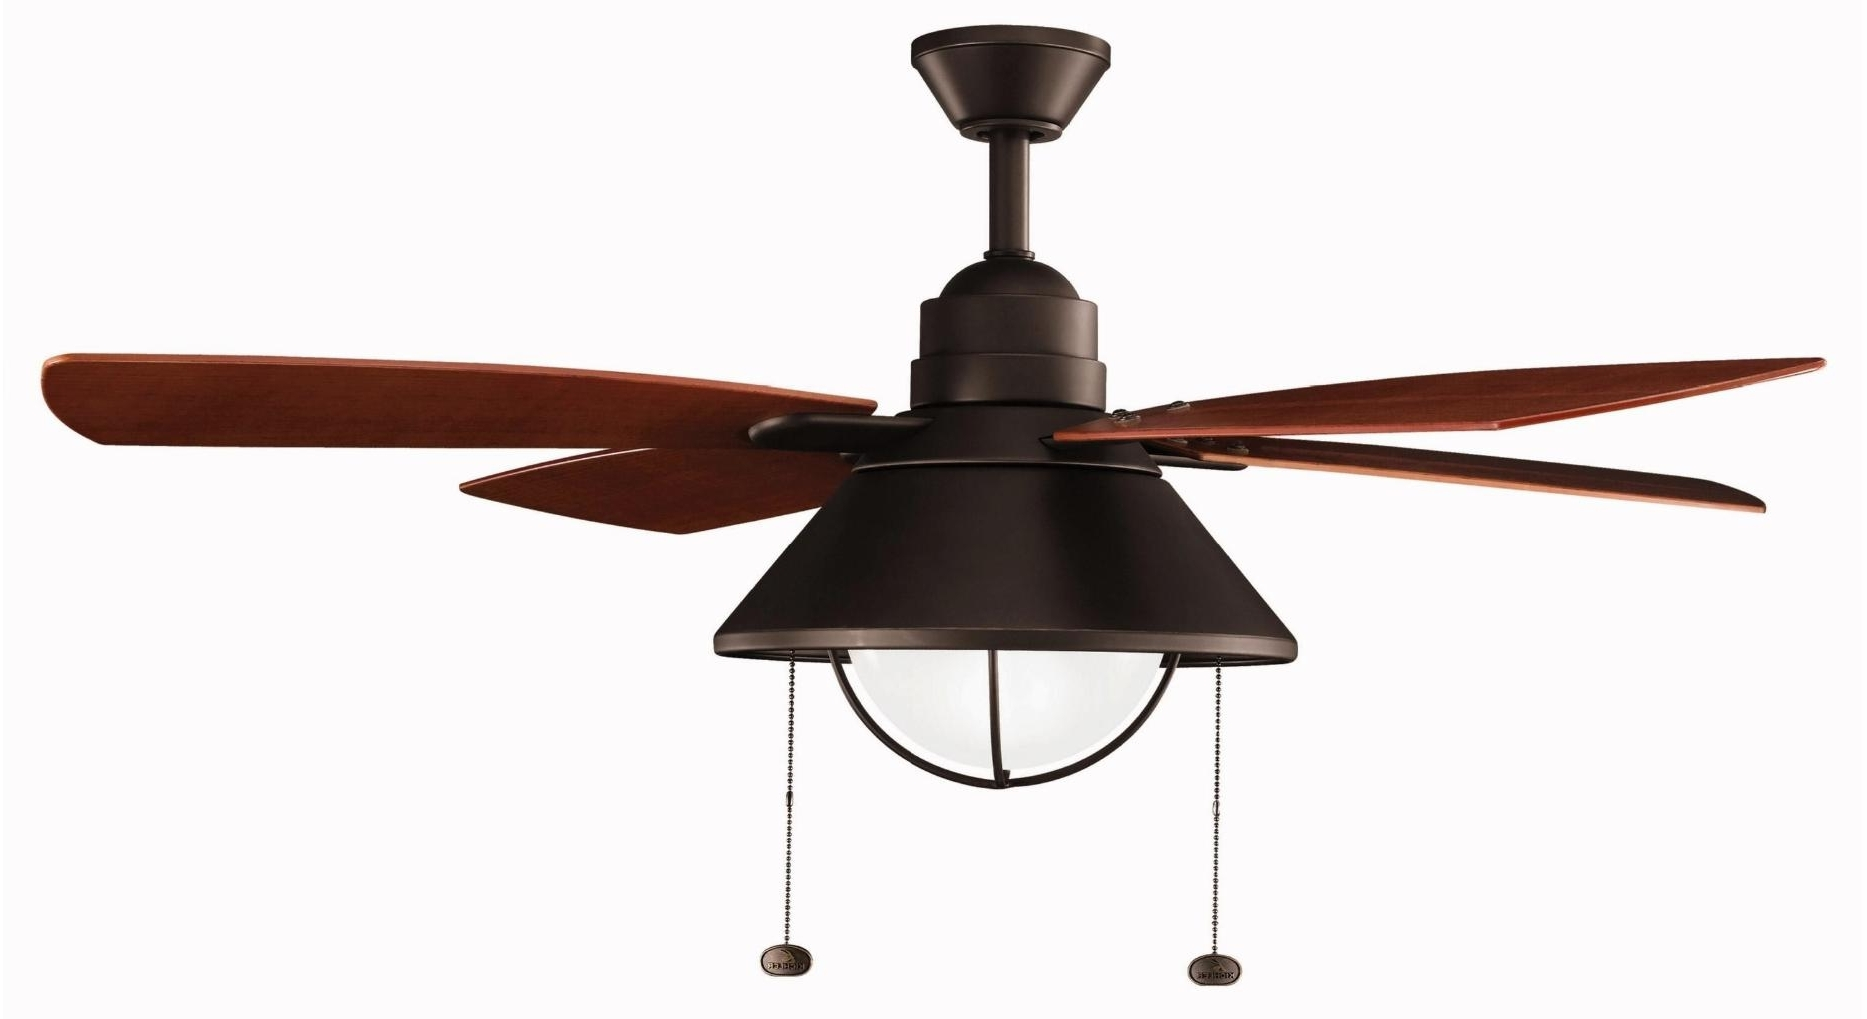 Outdoor Ceiling Fans And Lights Regarding Trendy Ceiling Fans Door Outdoor Ceiling Fans With Light Trend In Tray (View 20 of 20)